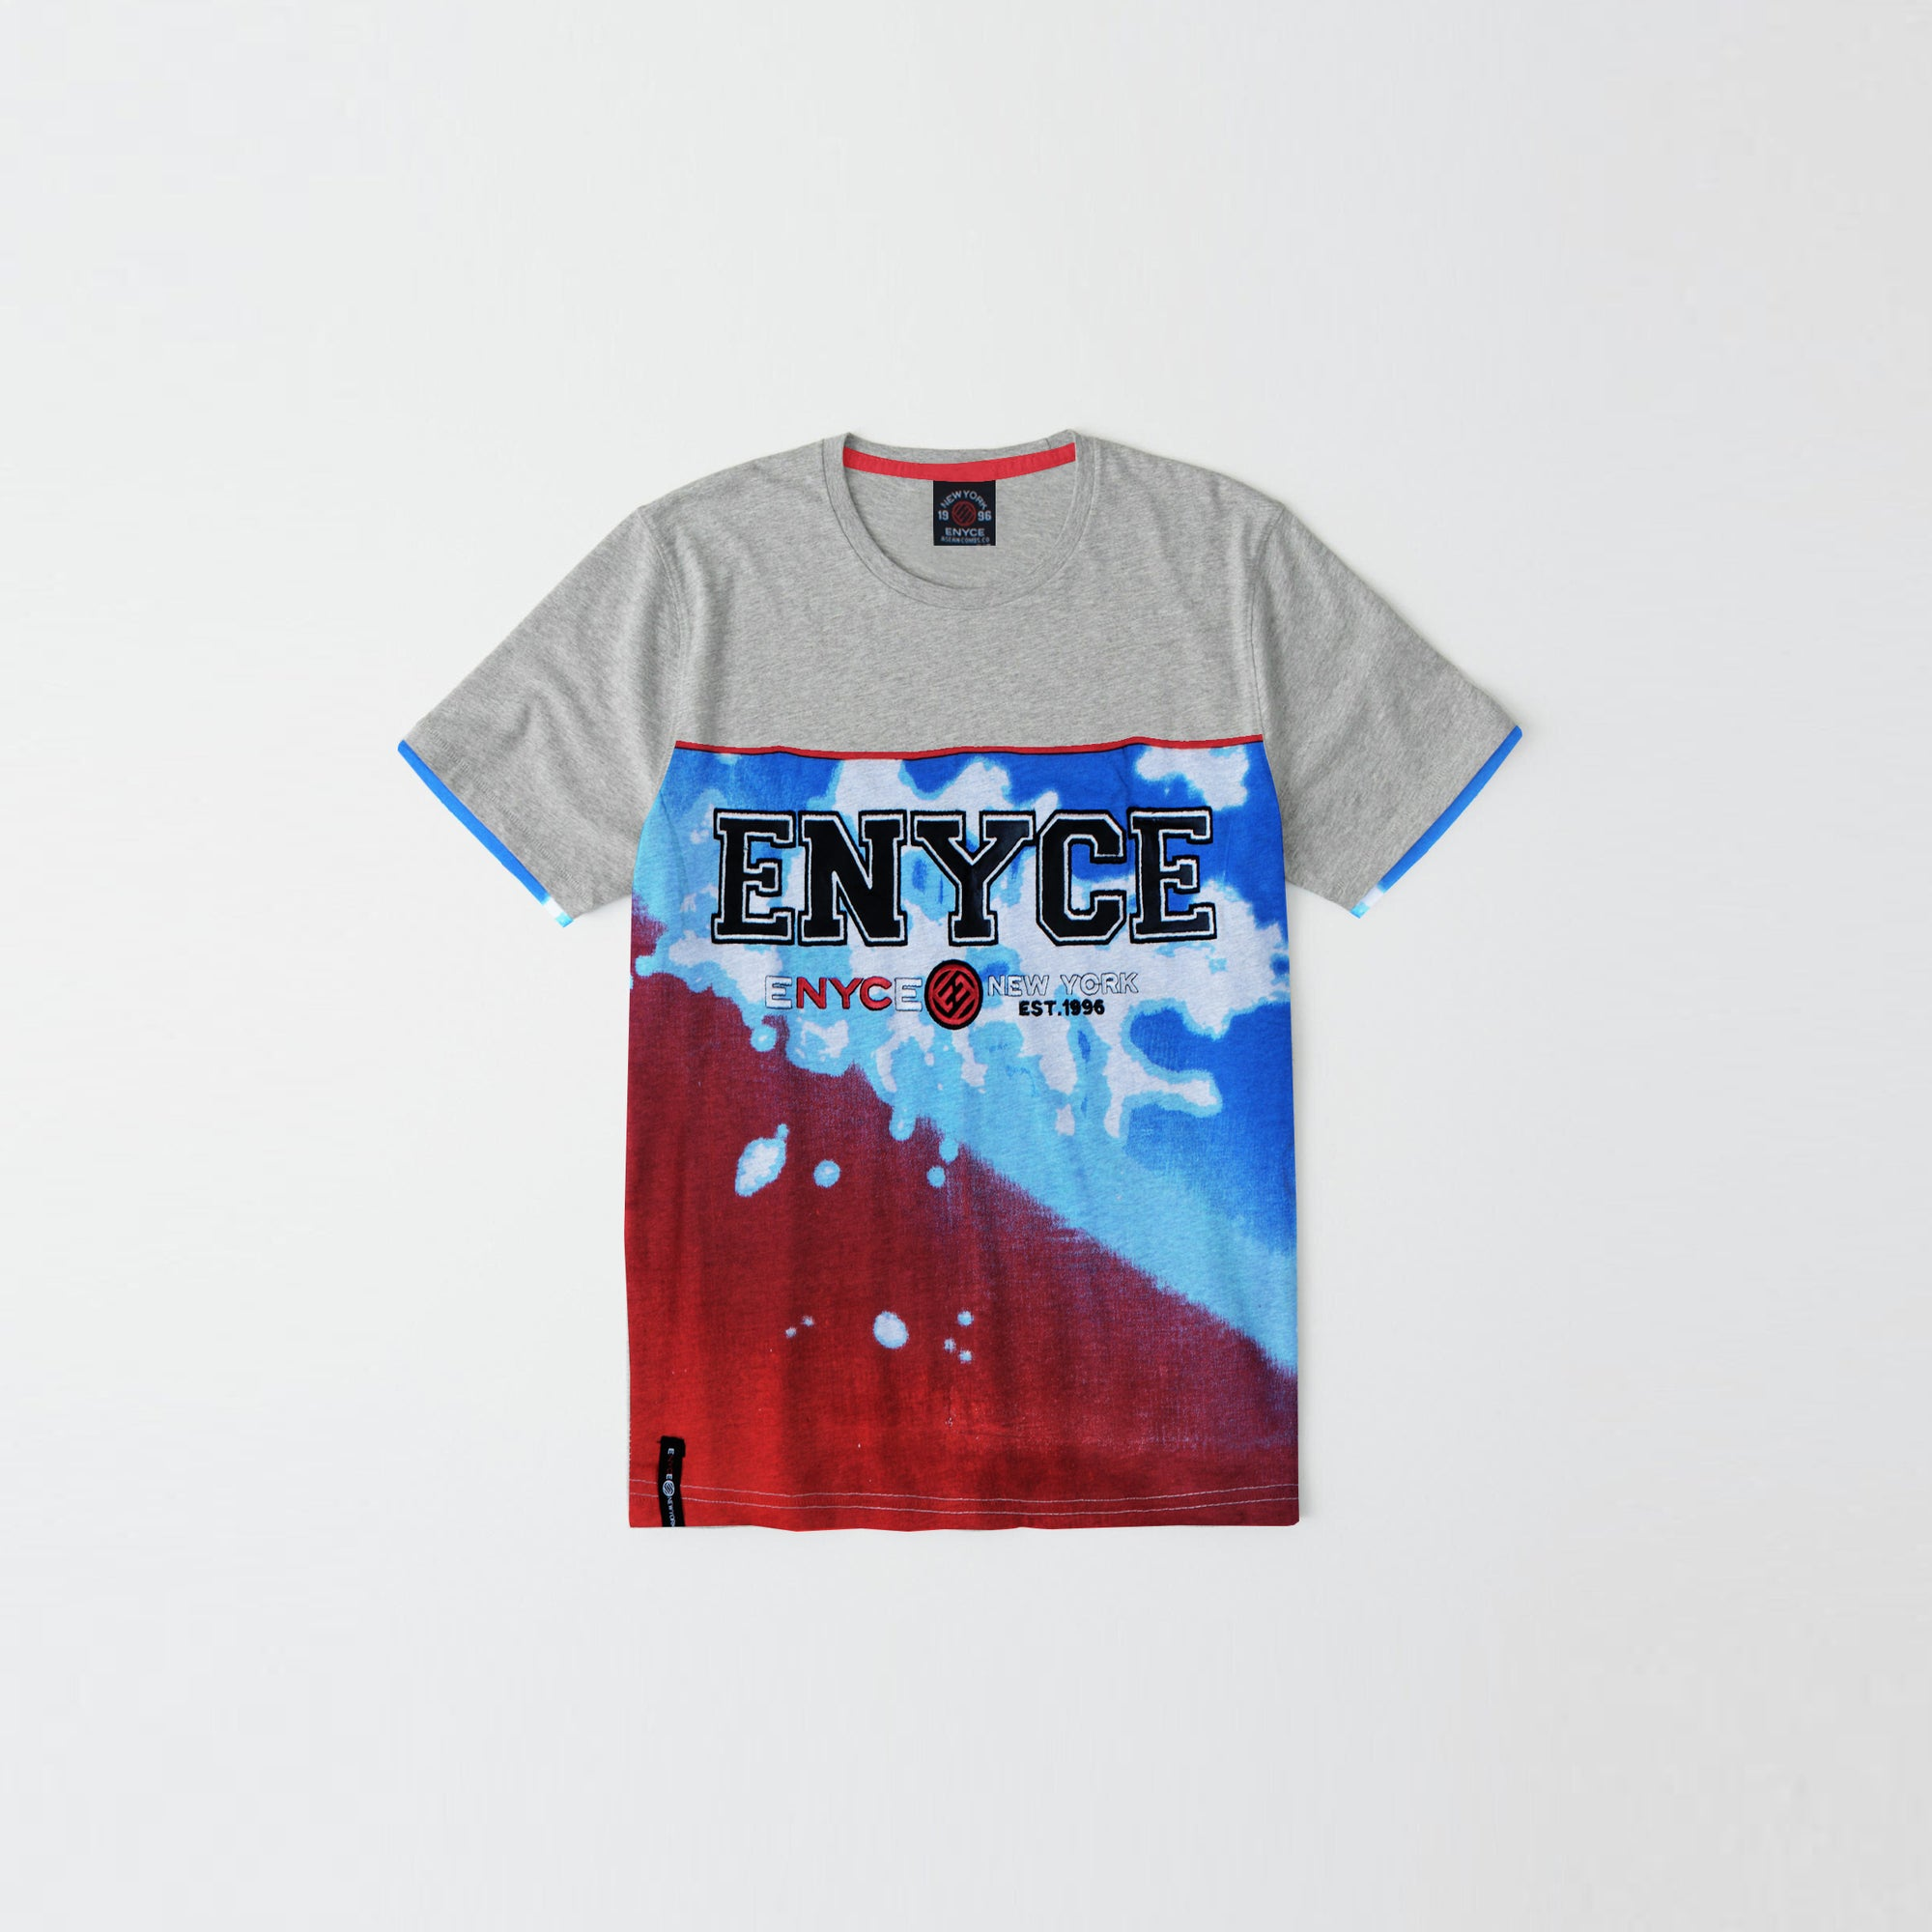 brandsego - New York Enyce Crew Neck Single Jersey T Shirt For Kids-Grey & Blue Panel-NA8877